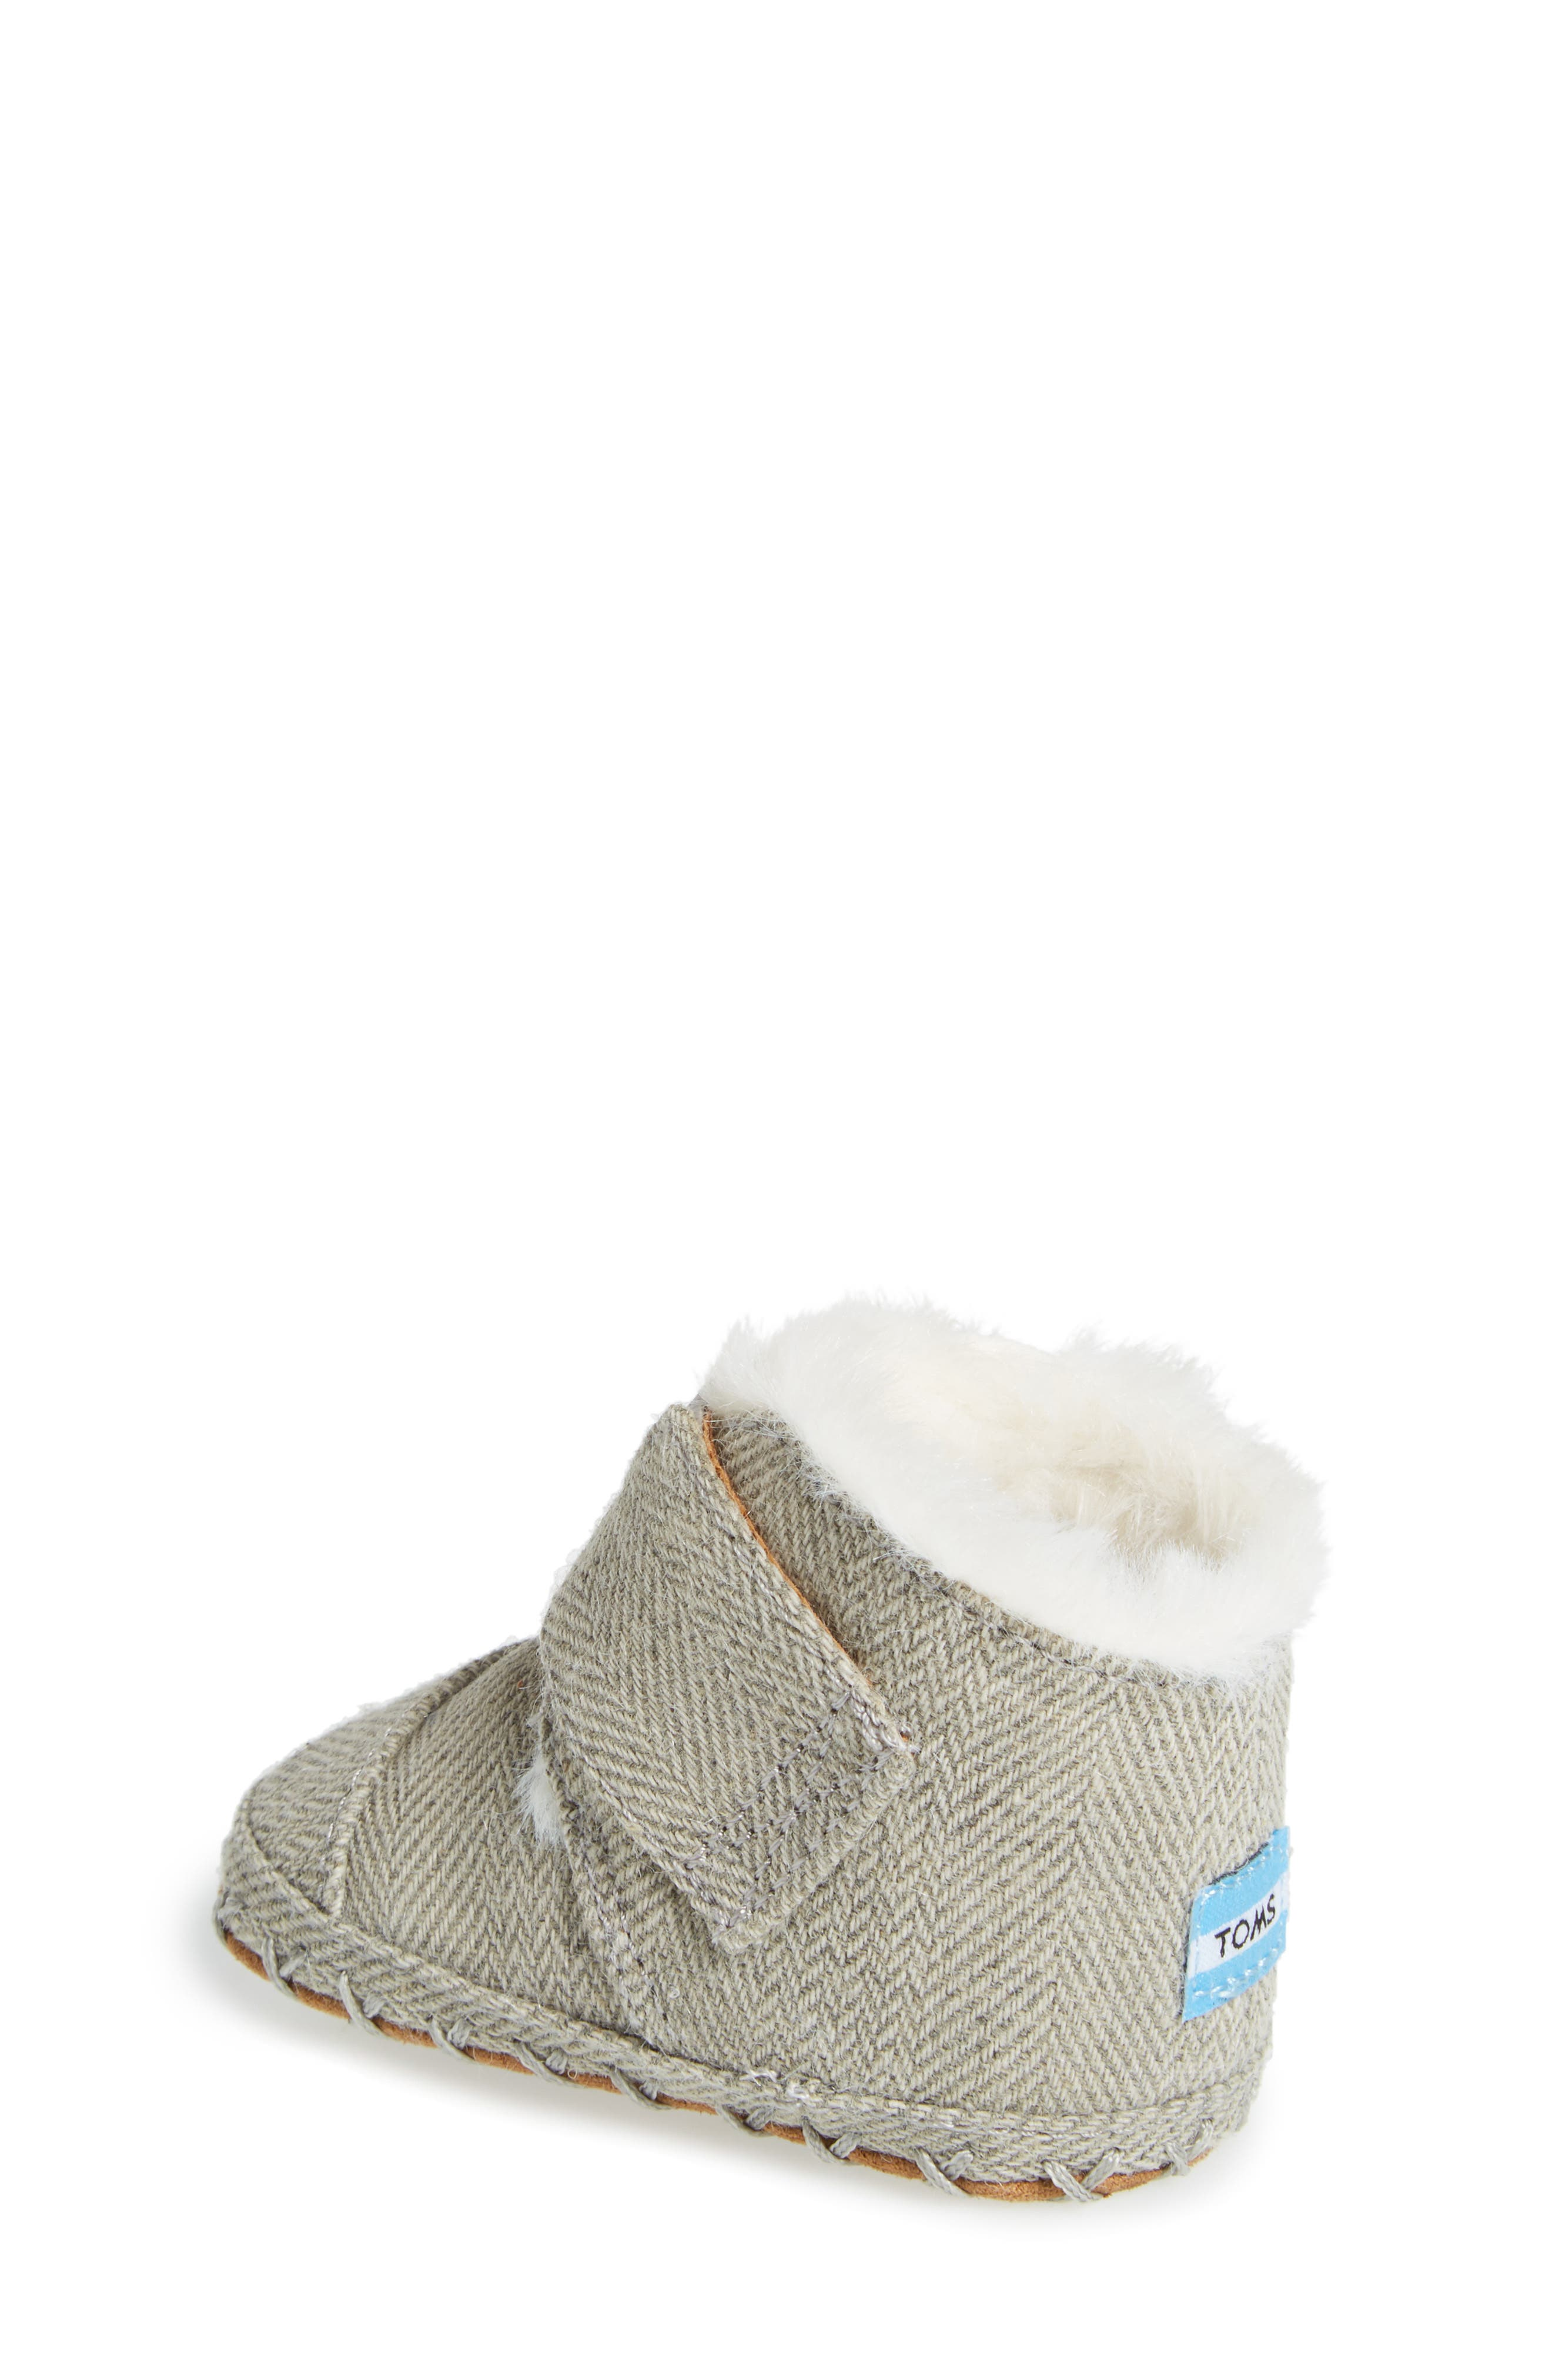 s shoes baby crib toms carters bear cribs com slippers carter boy v and accessories